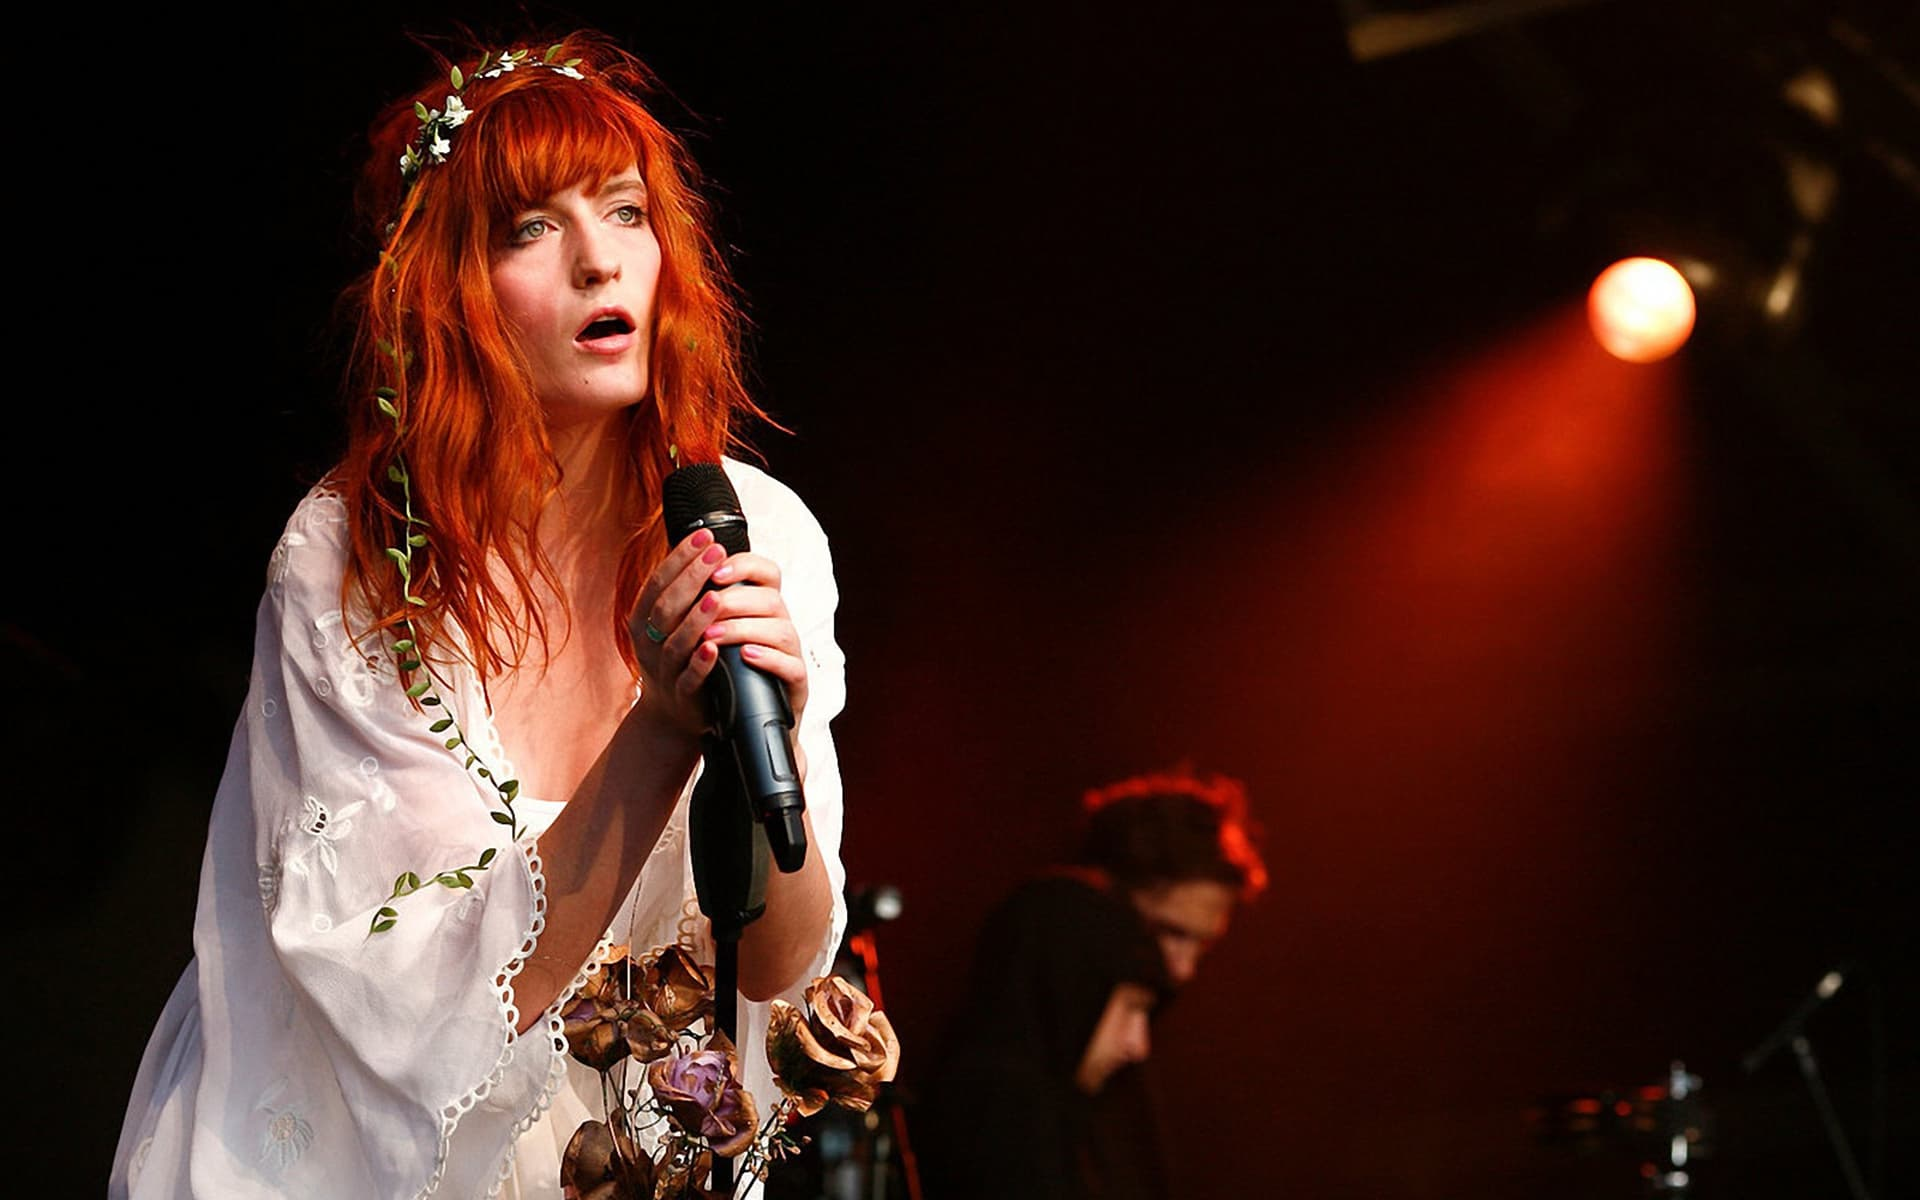 Florence Welch picture High Resolution